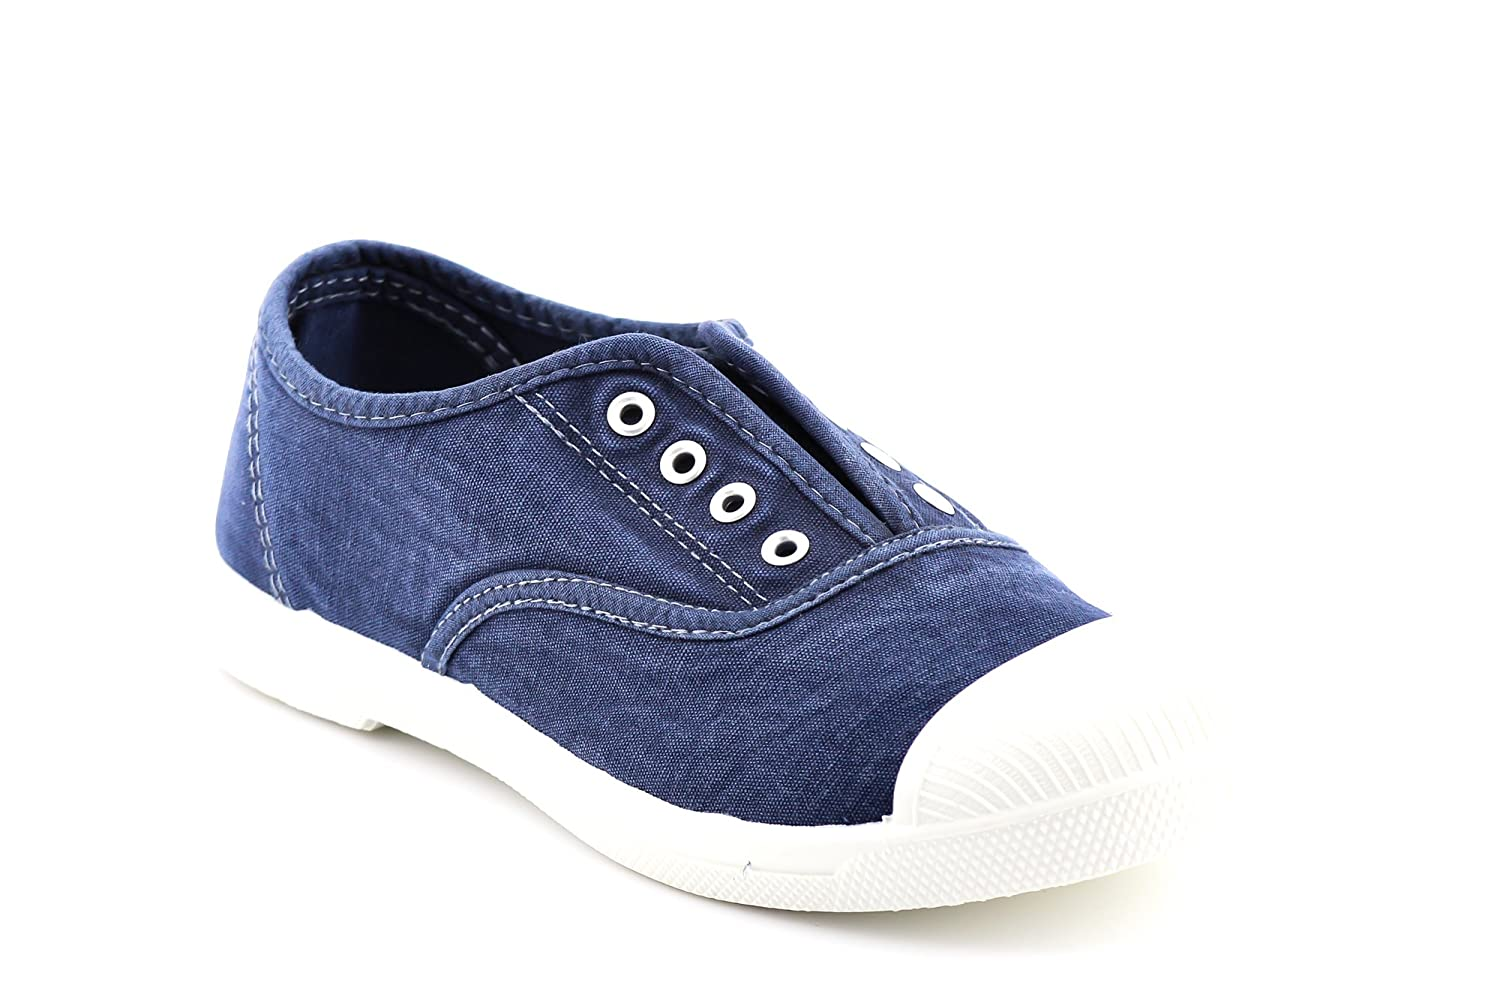 CALICO KIKI Women's Washed Laceless Slip-on Sneakers - Cushioned Soft Laceless Comfort Flat Shoes B07C7P74Z9 10 B(M) US|Navy